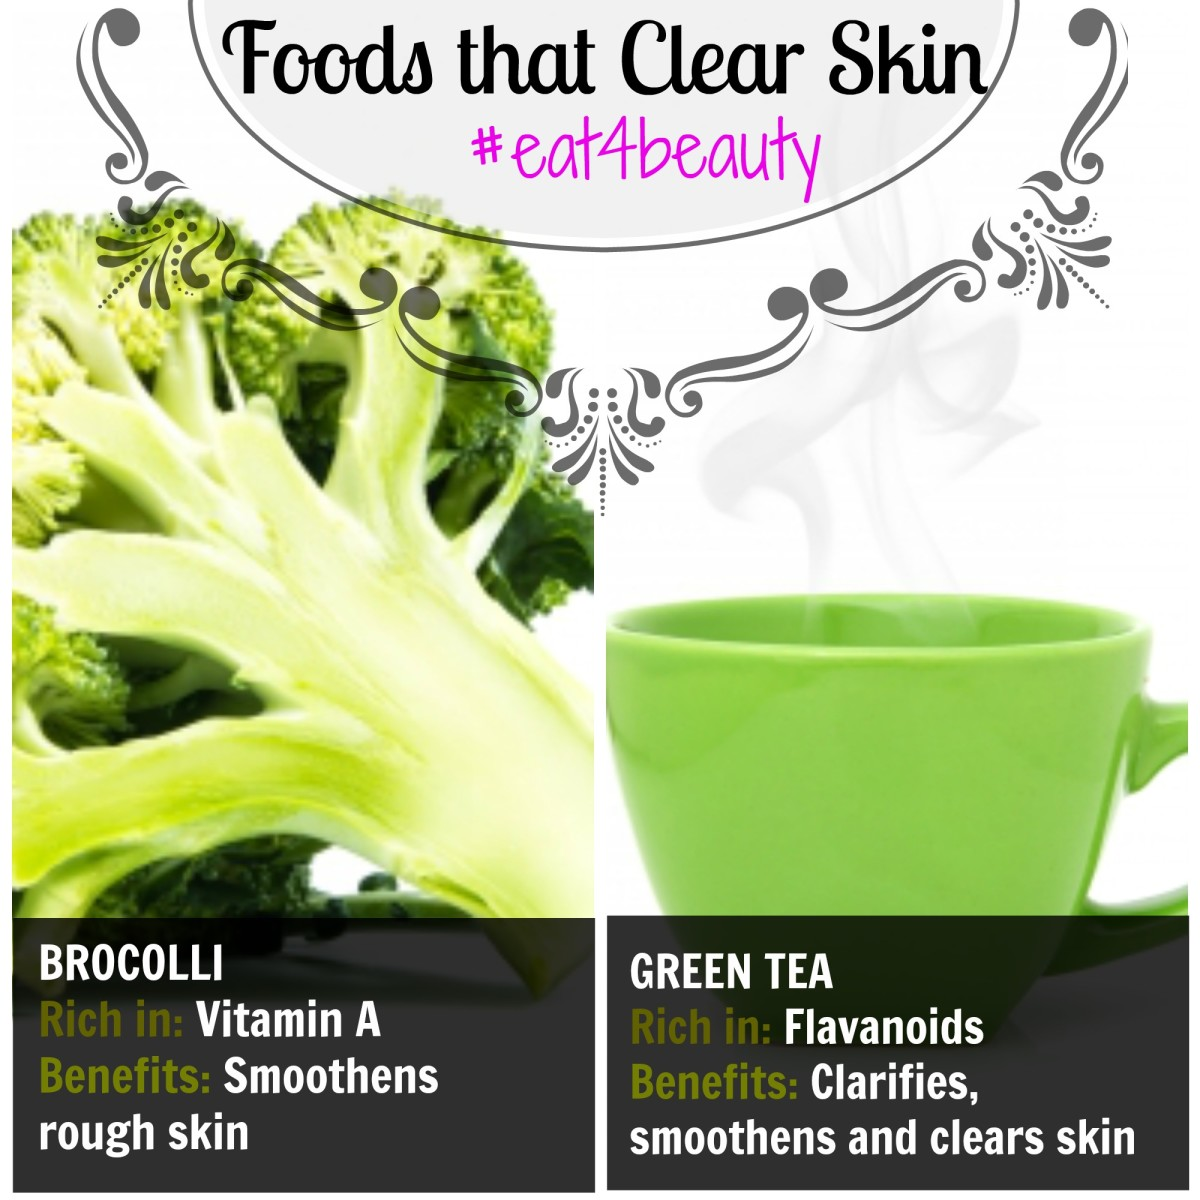 Broccolli & Green tea - Foods to eat for smooth clear skin.